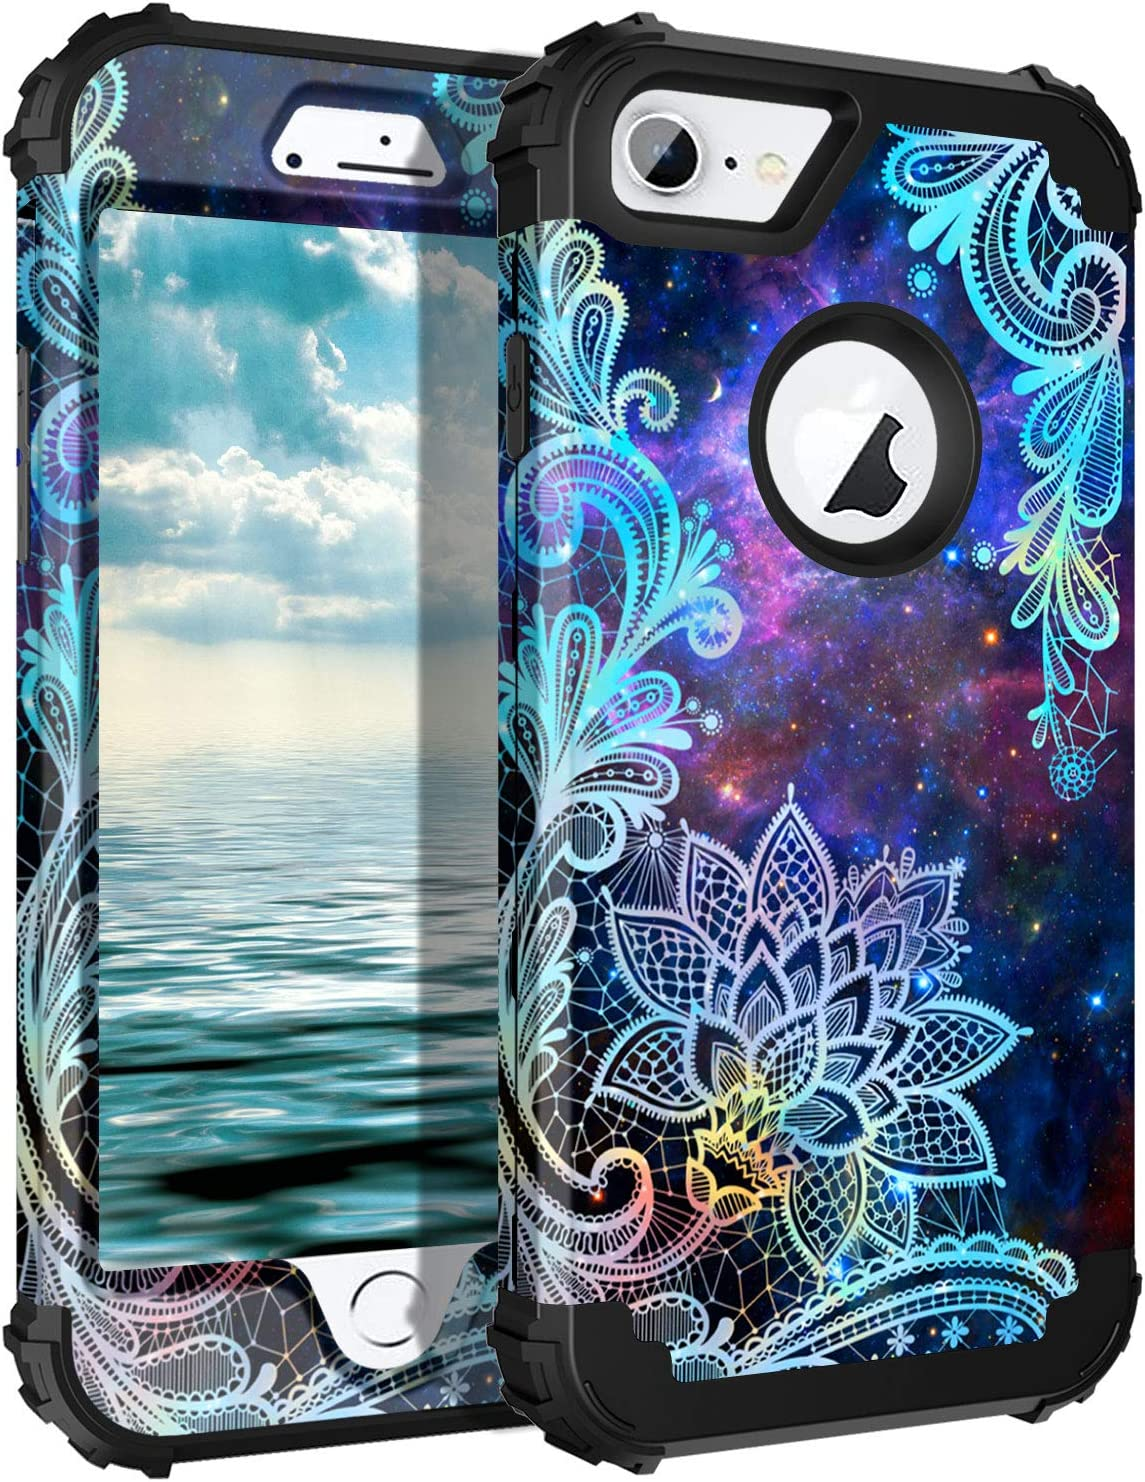 Casetego Compatible with iPhone 8 Case,iPhone 7 Case,Floral Three Layer Heavy Duty Hybrid Sturdy Shockproof Full Body Protective Cover Case for Apple iPhone 8/7,Mandala